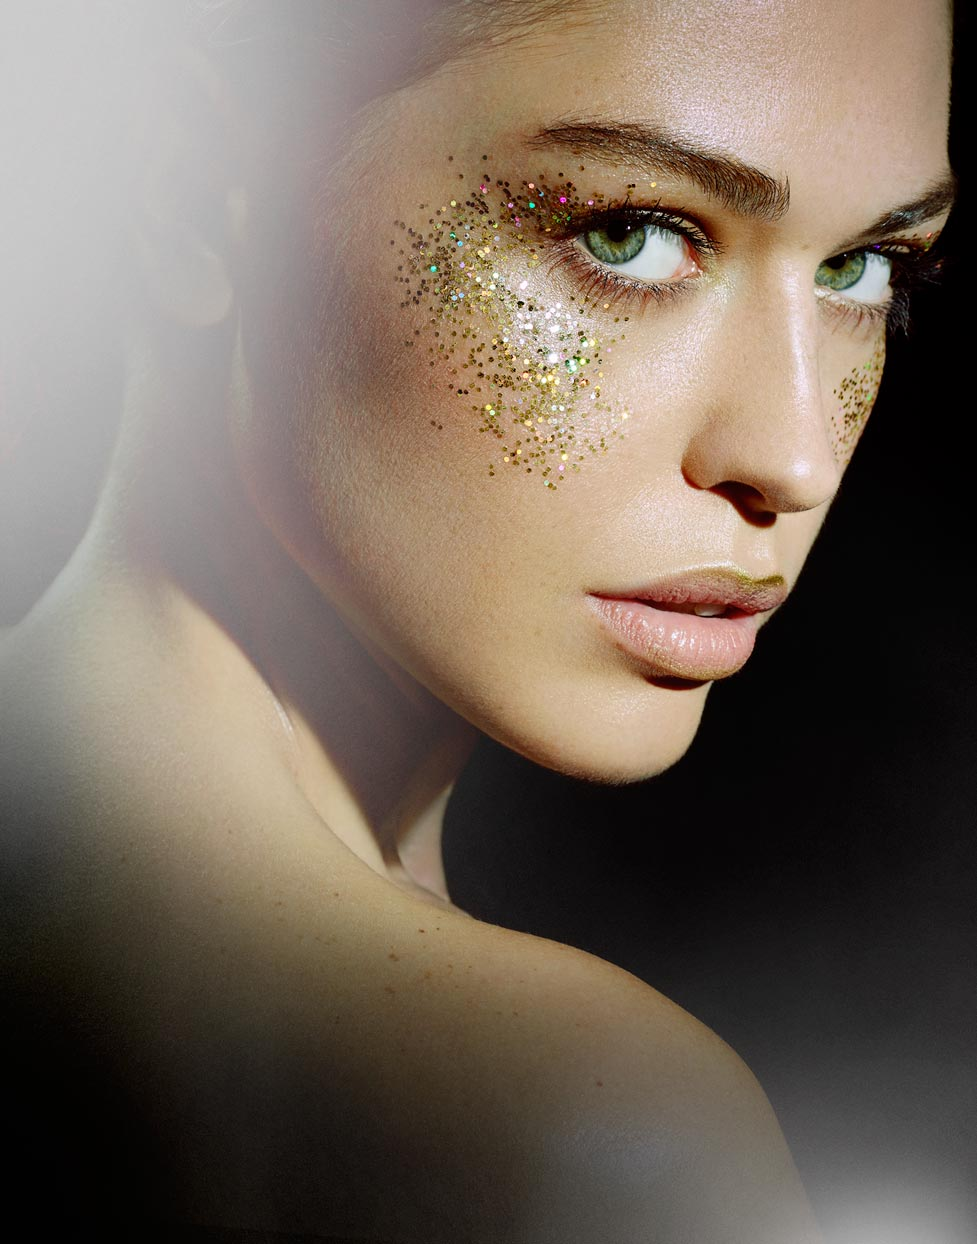 Mark DeLong - Beauty Photographer - Woman with glitter highlights on her cheek looking over her shoulder. Green eyes